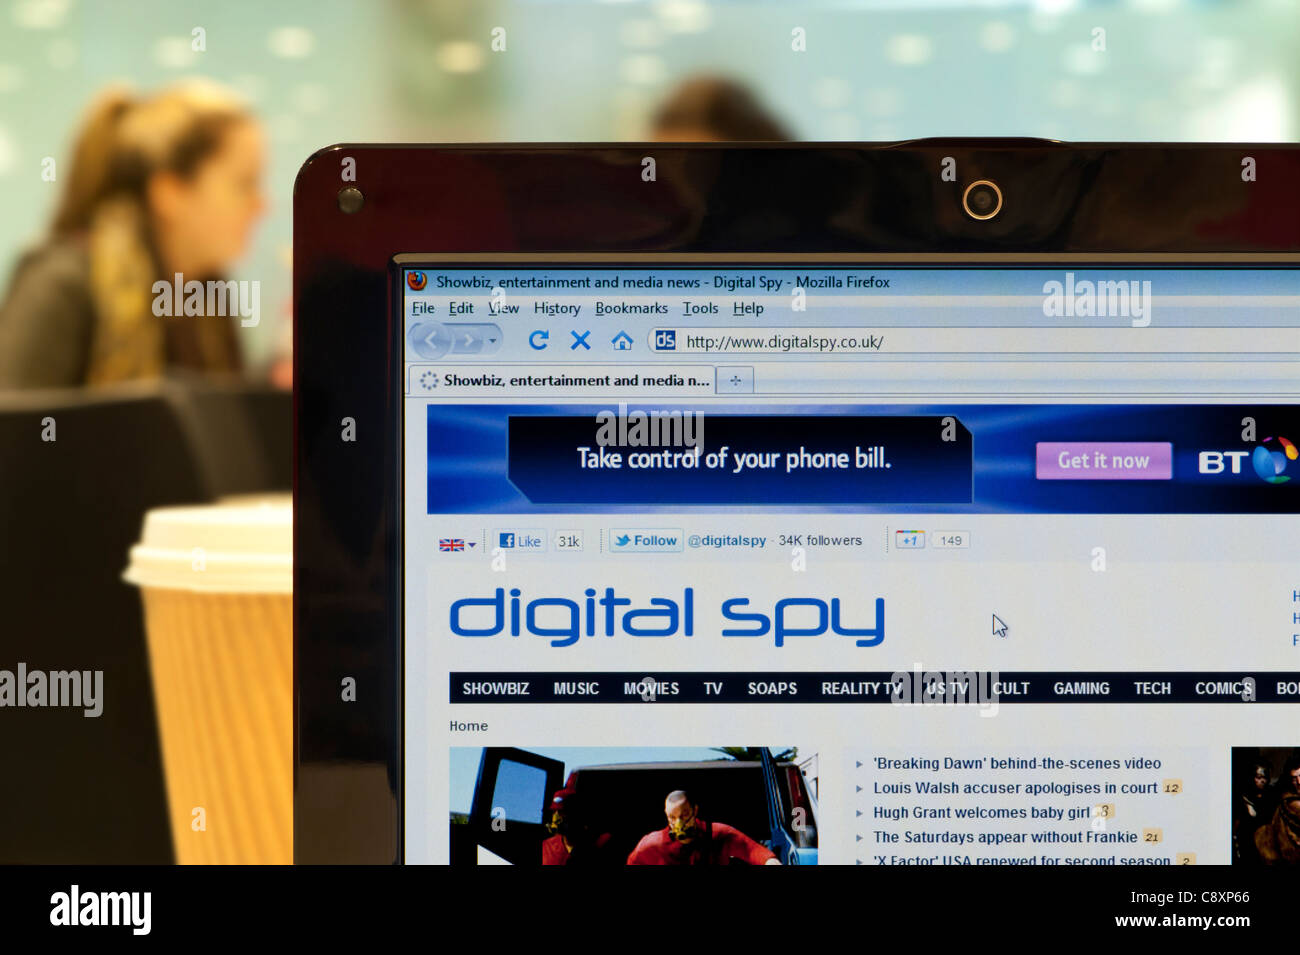 The Digital Spy website shot in a coffee shop environment (Editorial use only: print, TV, e-book and editorial - Stock Image